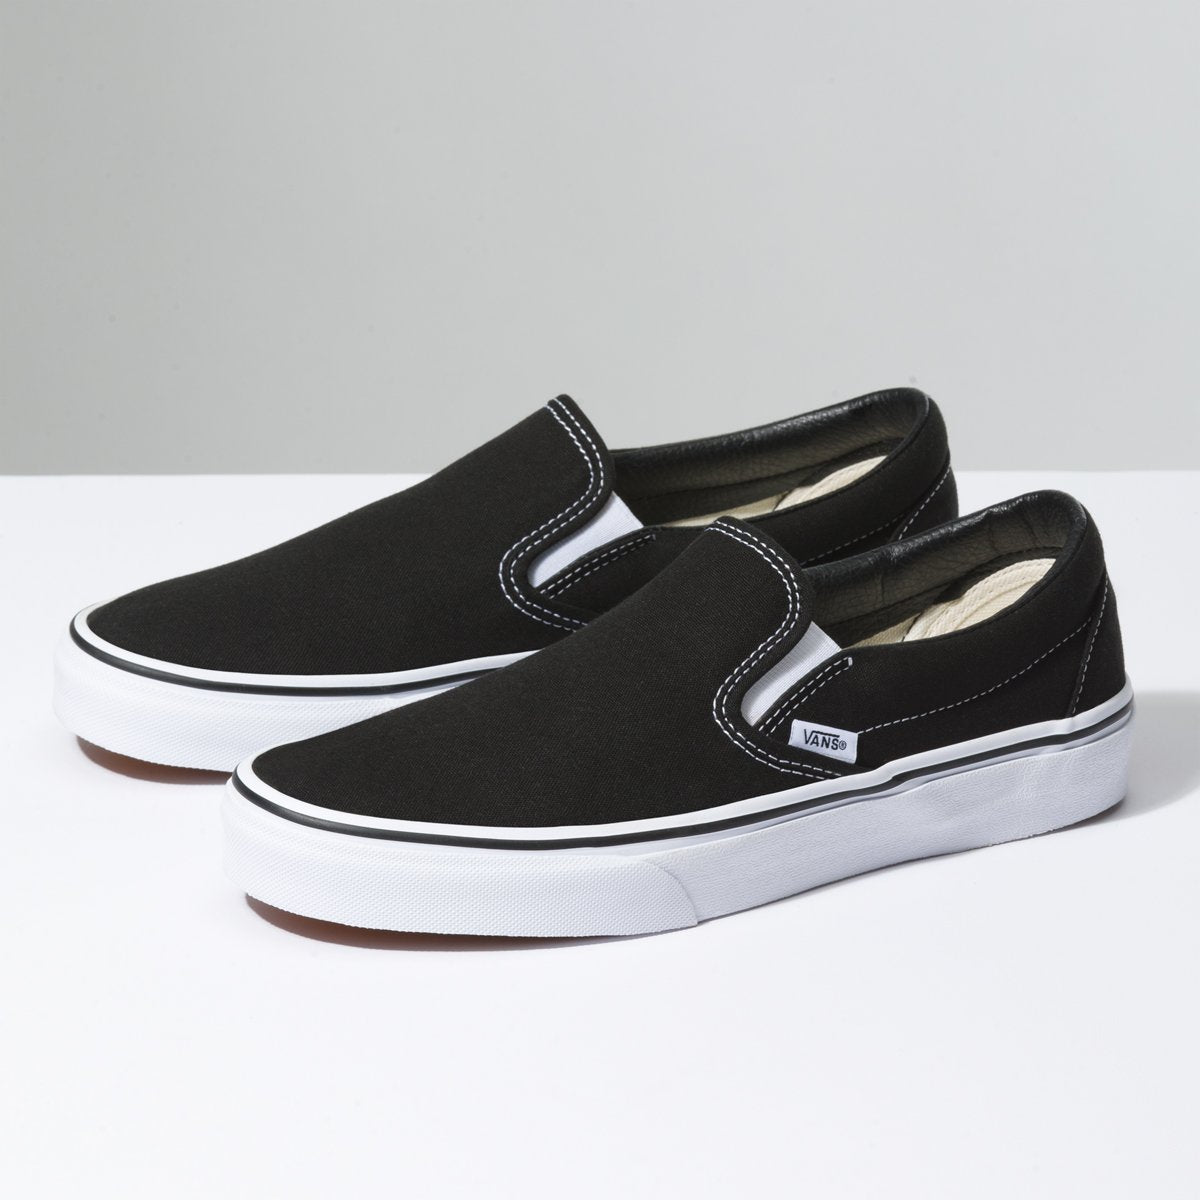 Zapatillas Vans Classic Slip-on - Black - Vans